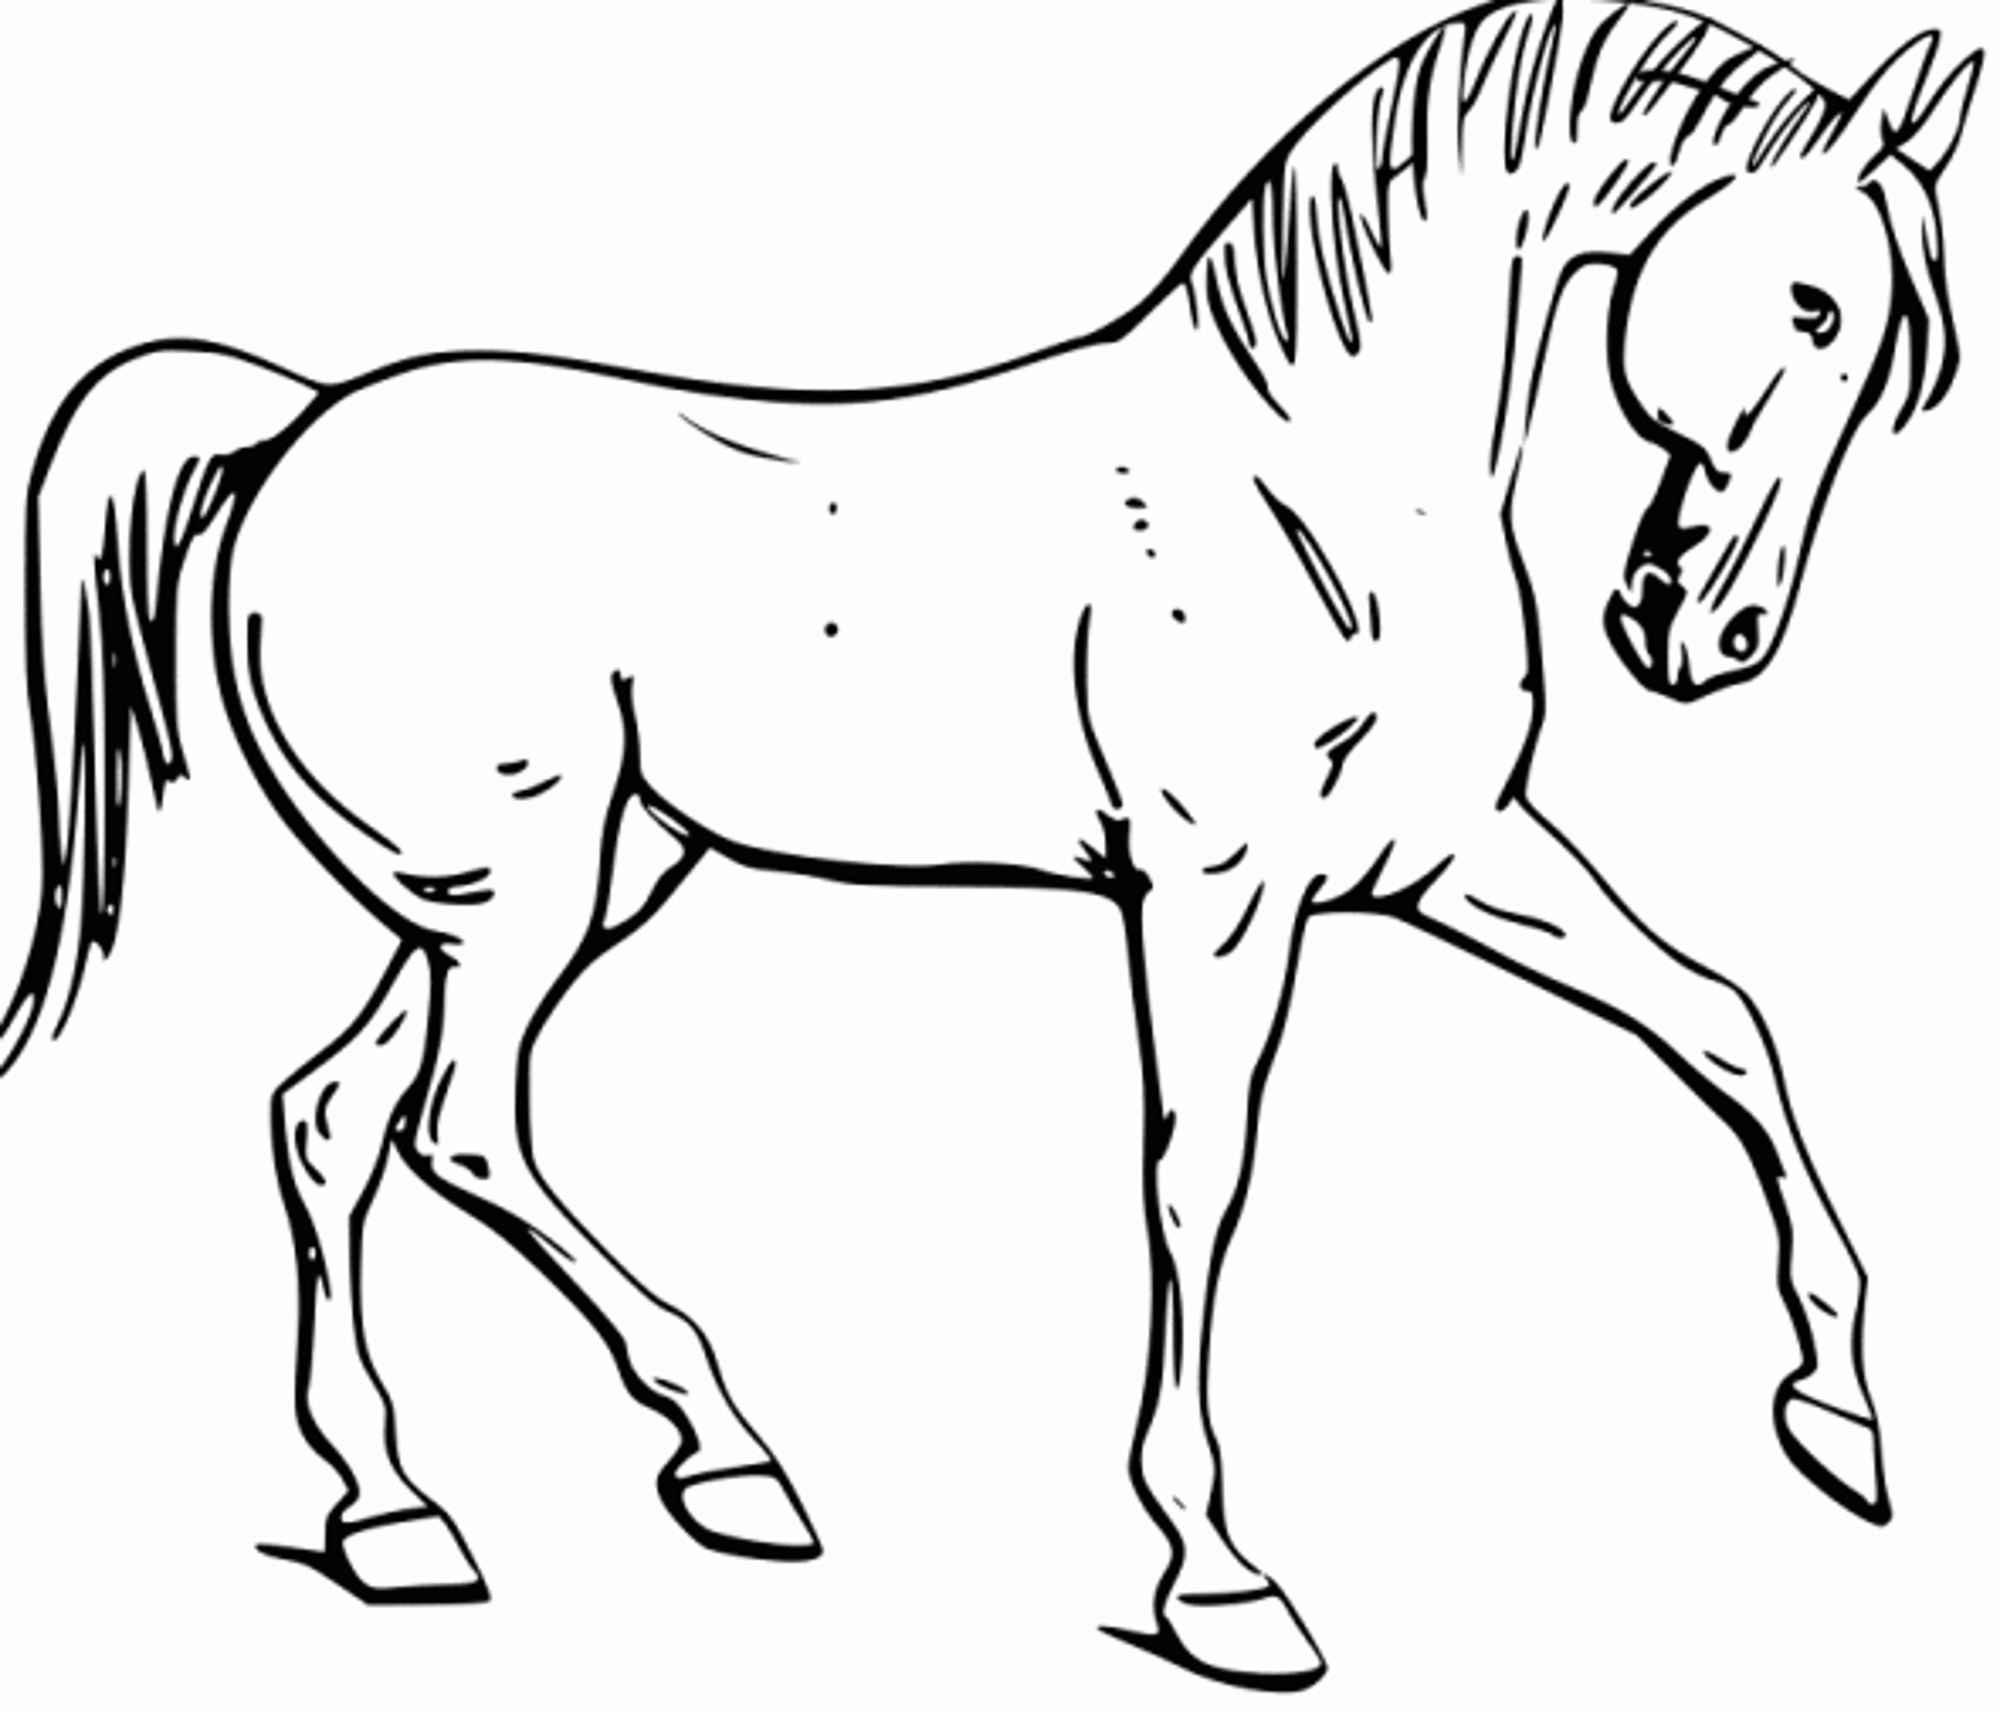 2000x1712 Fun Horse Coloring Pages For Your Kids Printable Printable